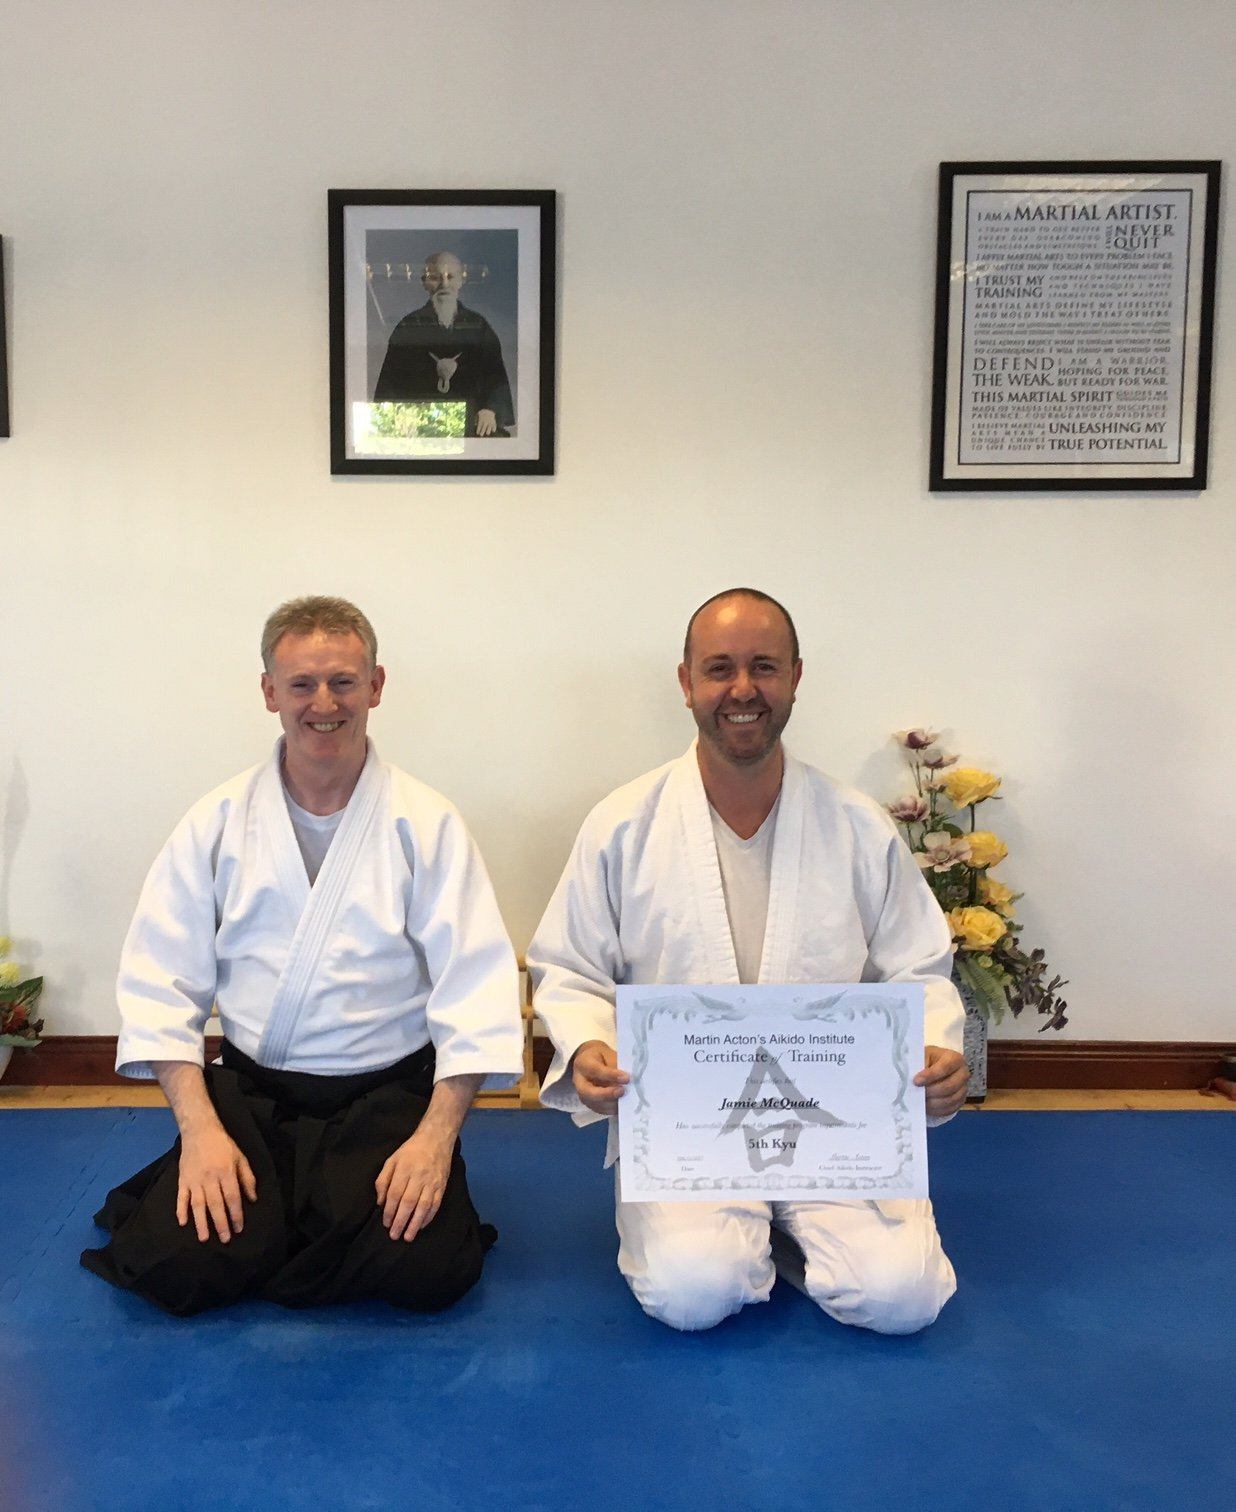 Jamie McQuade getting his Aikido 5th kyung grading  with Martin Acton sensei  on the 27/6/17 at Martin Acton's Aikido Institute